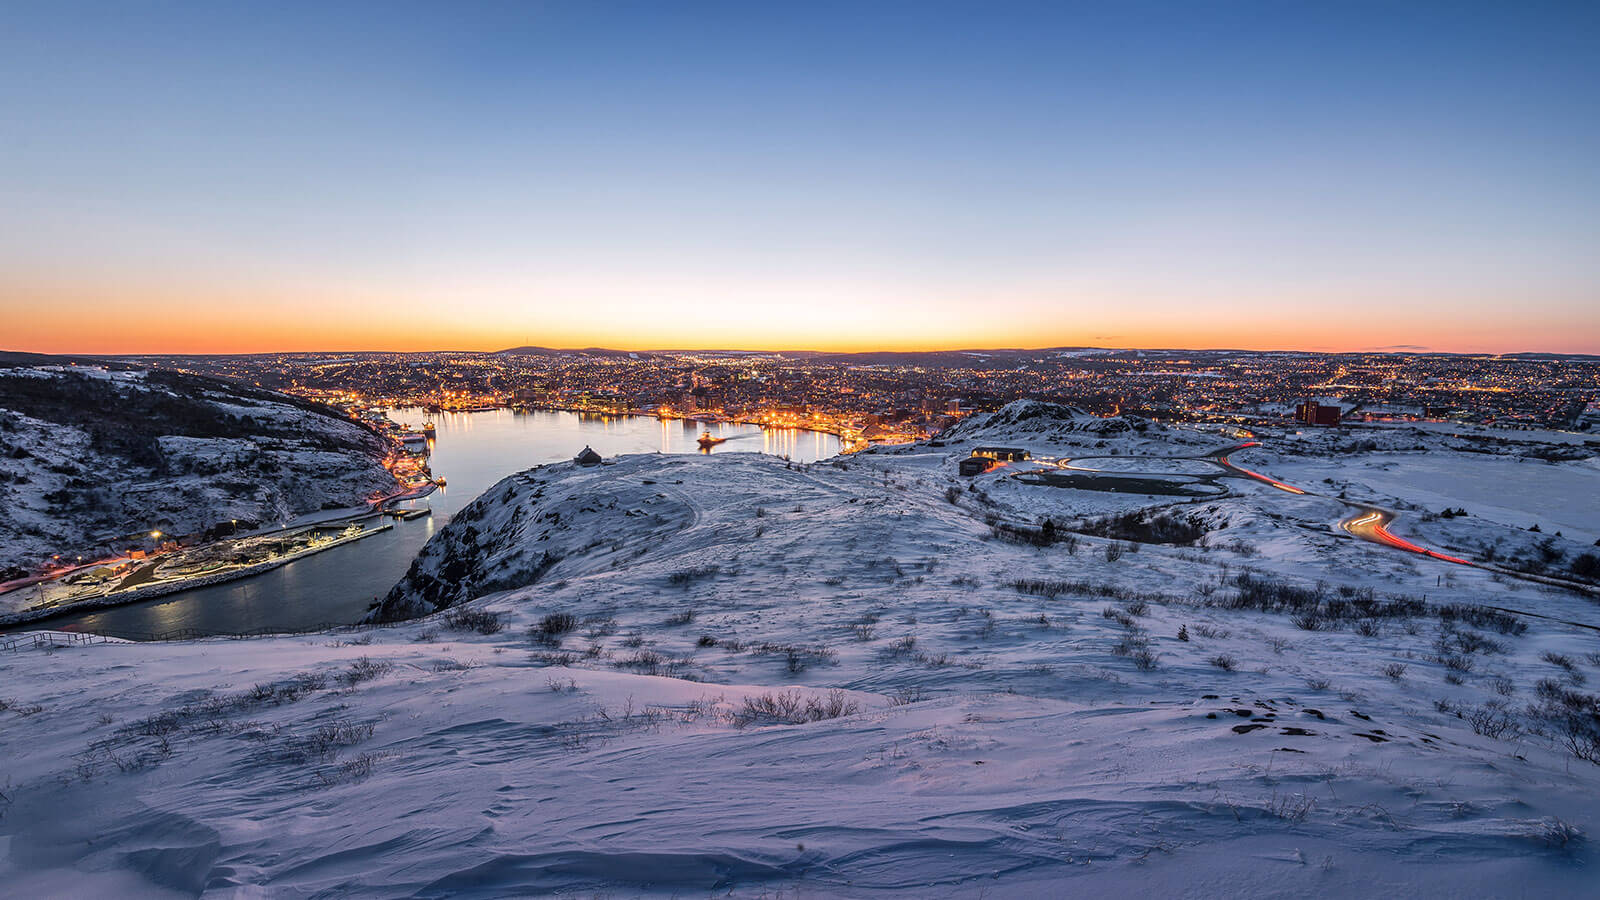 The best of St. John's winter - image